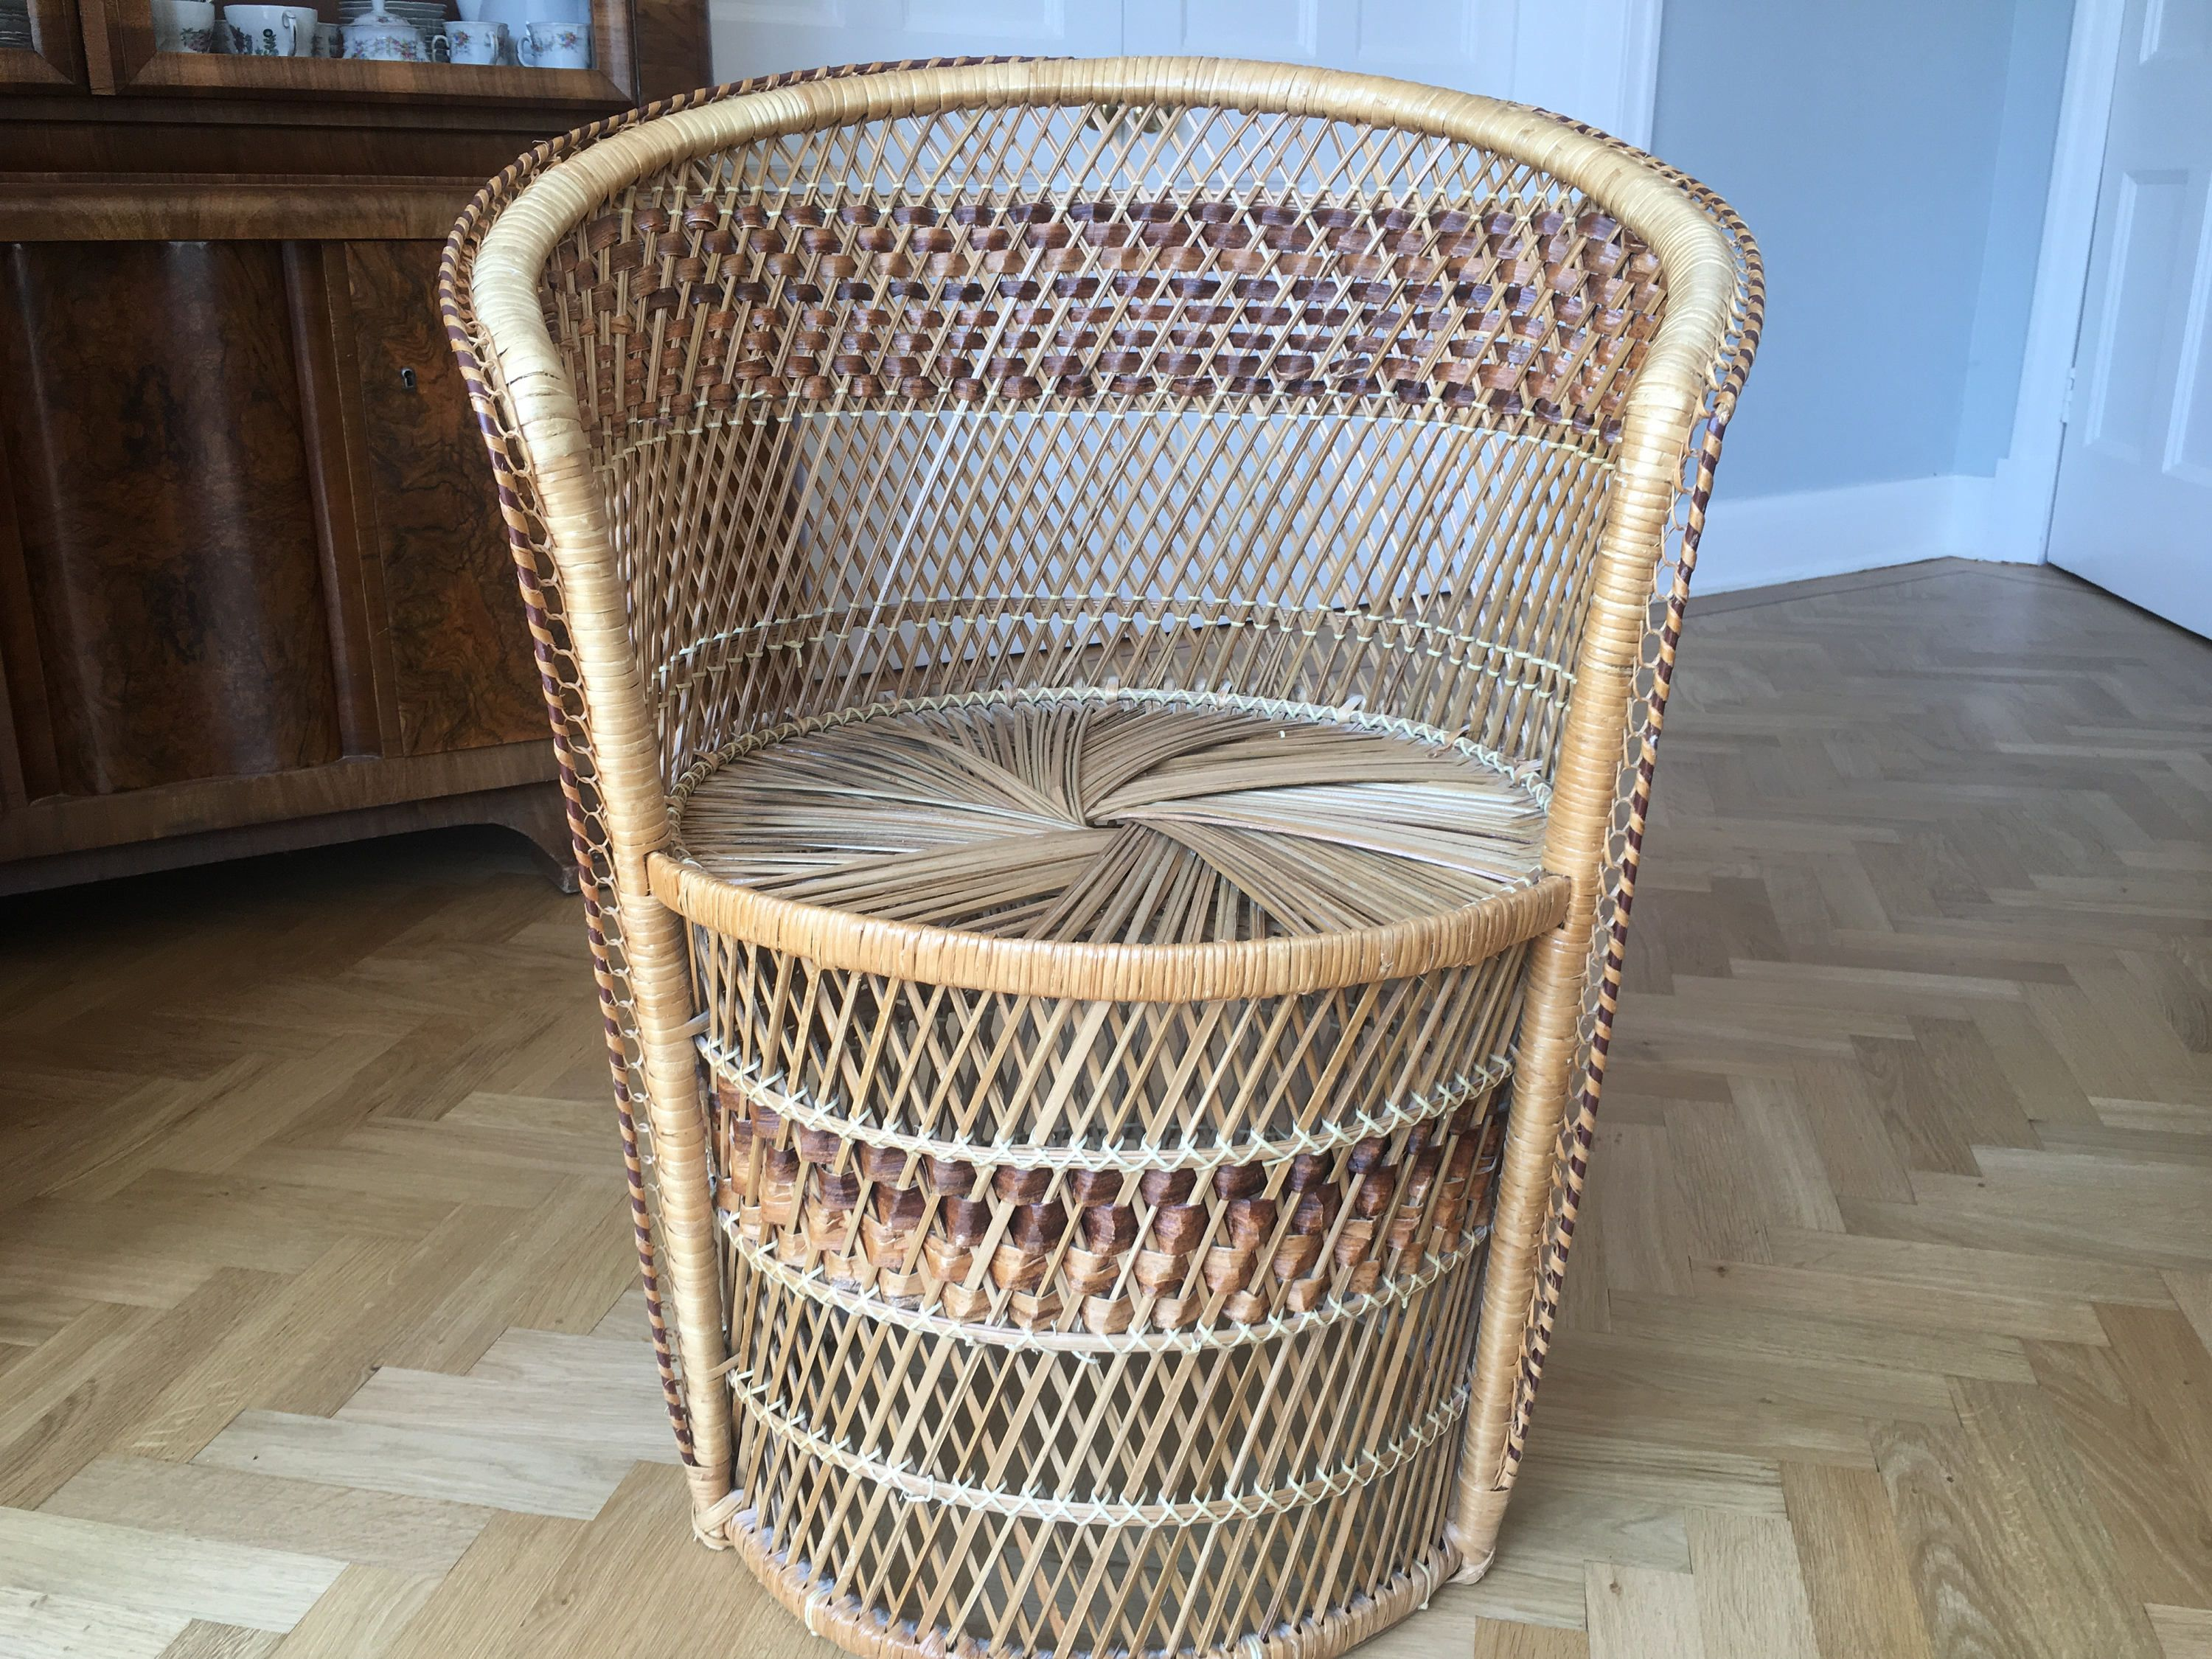 Bohemian 1970S Wicker Rattan Patio Chair By Verylastcentury On Etsy